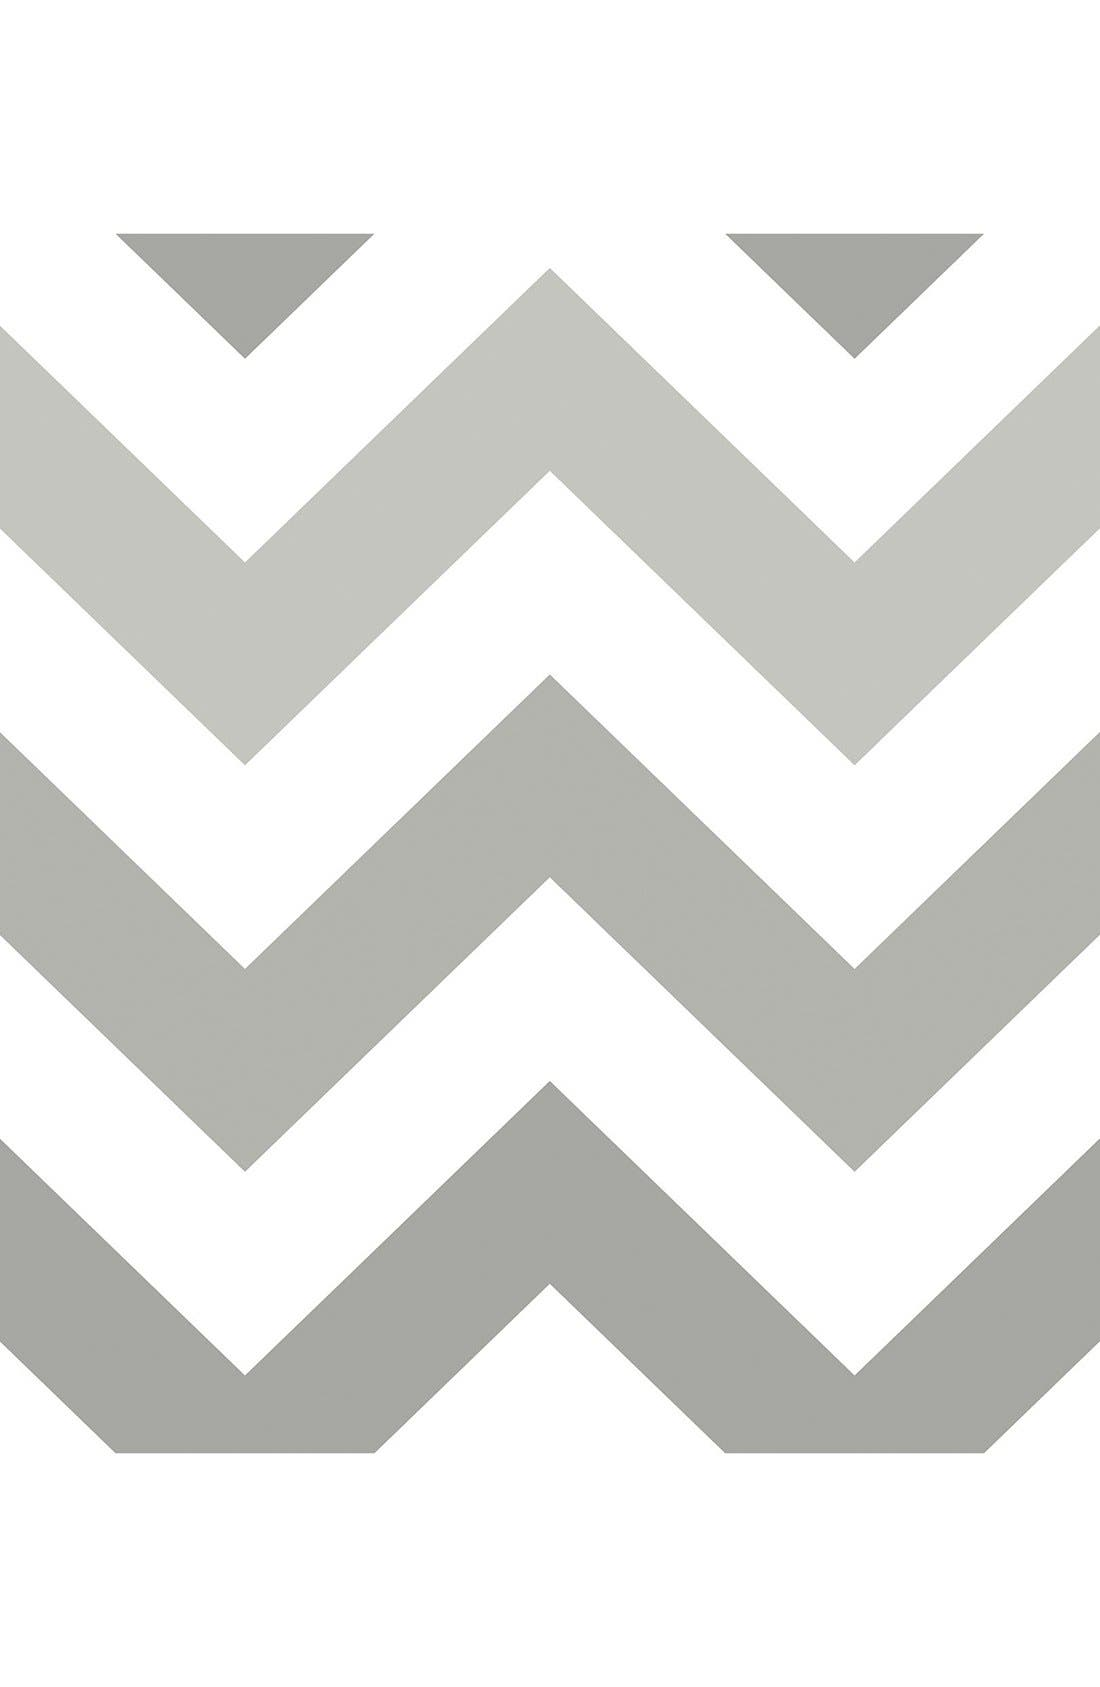 Alternate Image 1 Selected - Wallpops 'Zig Zag' Reusable Peel & Stick Vinyl Wallpaper